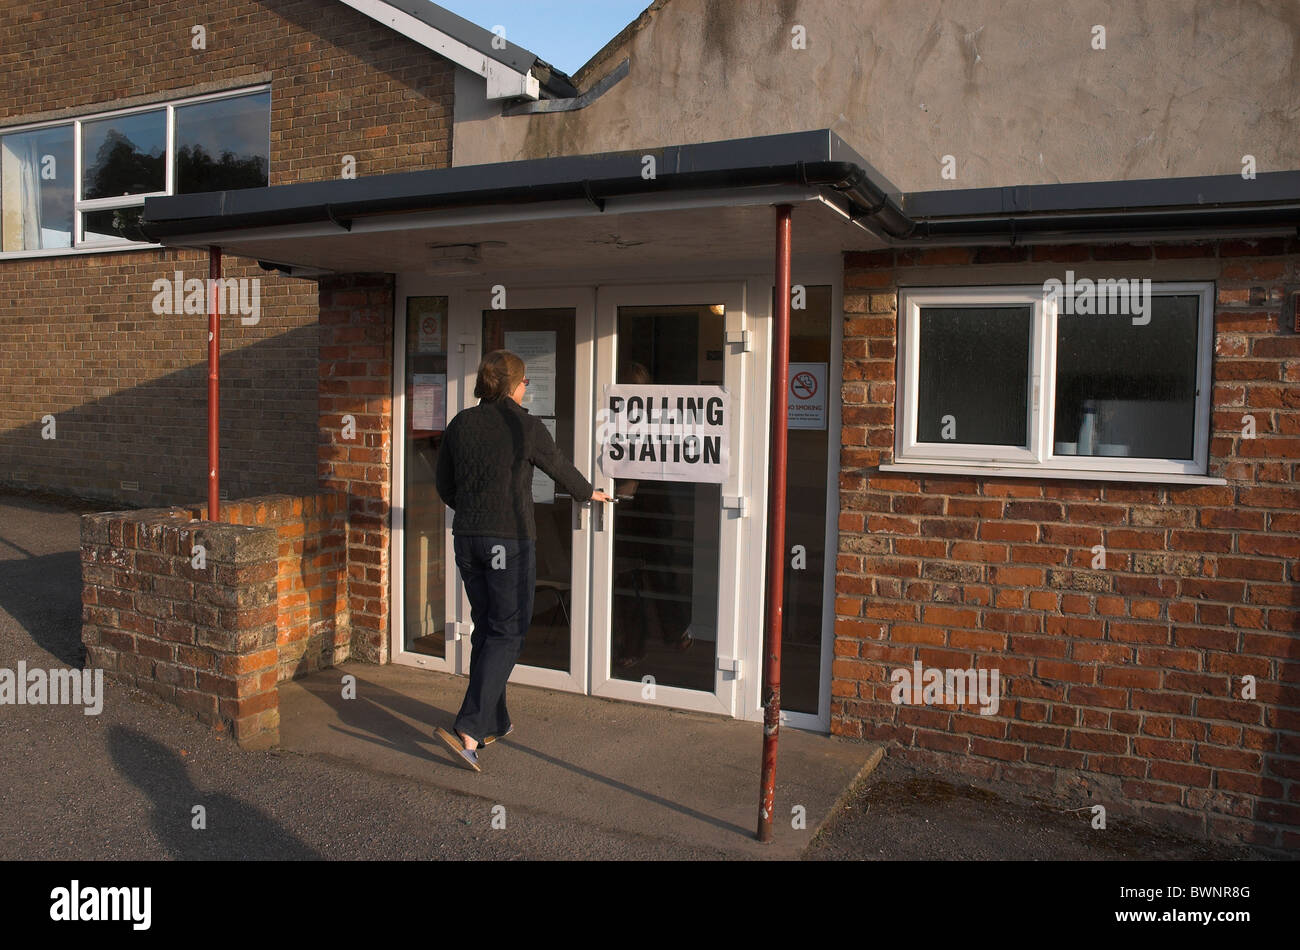 Women entering Village Hall Polling Station during 2010 General Elections - Stock Image